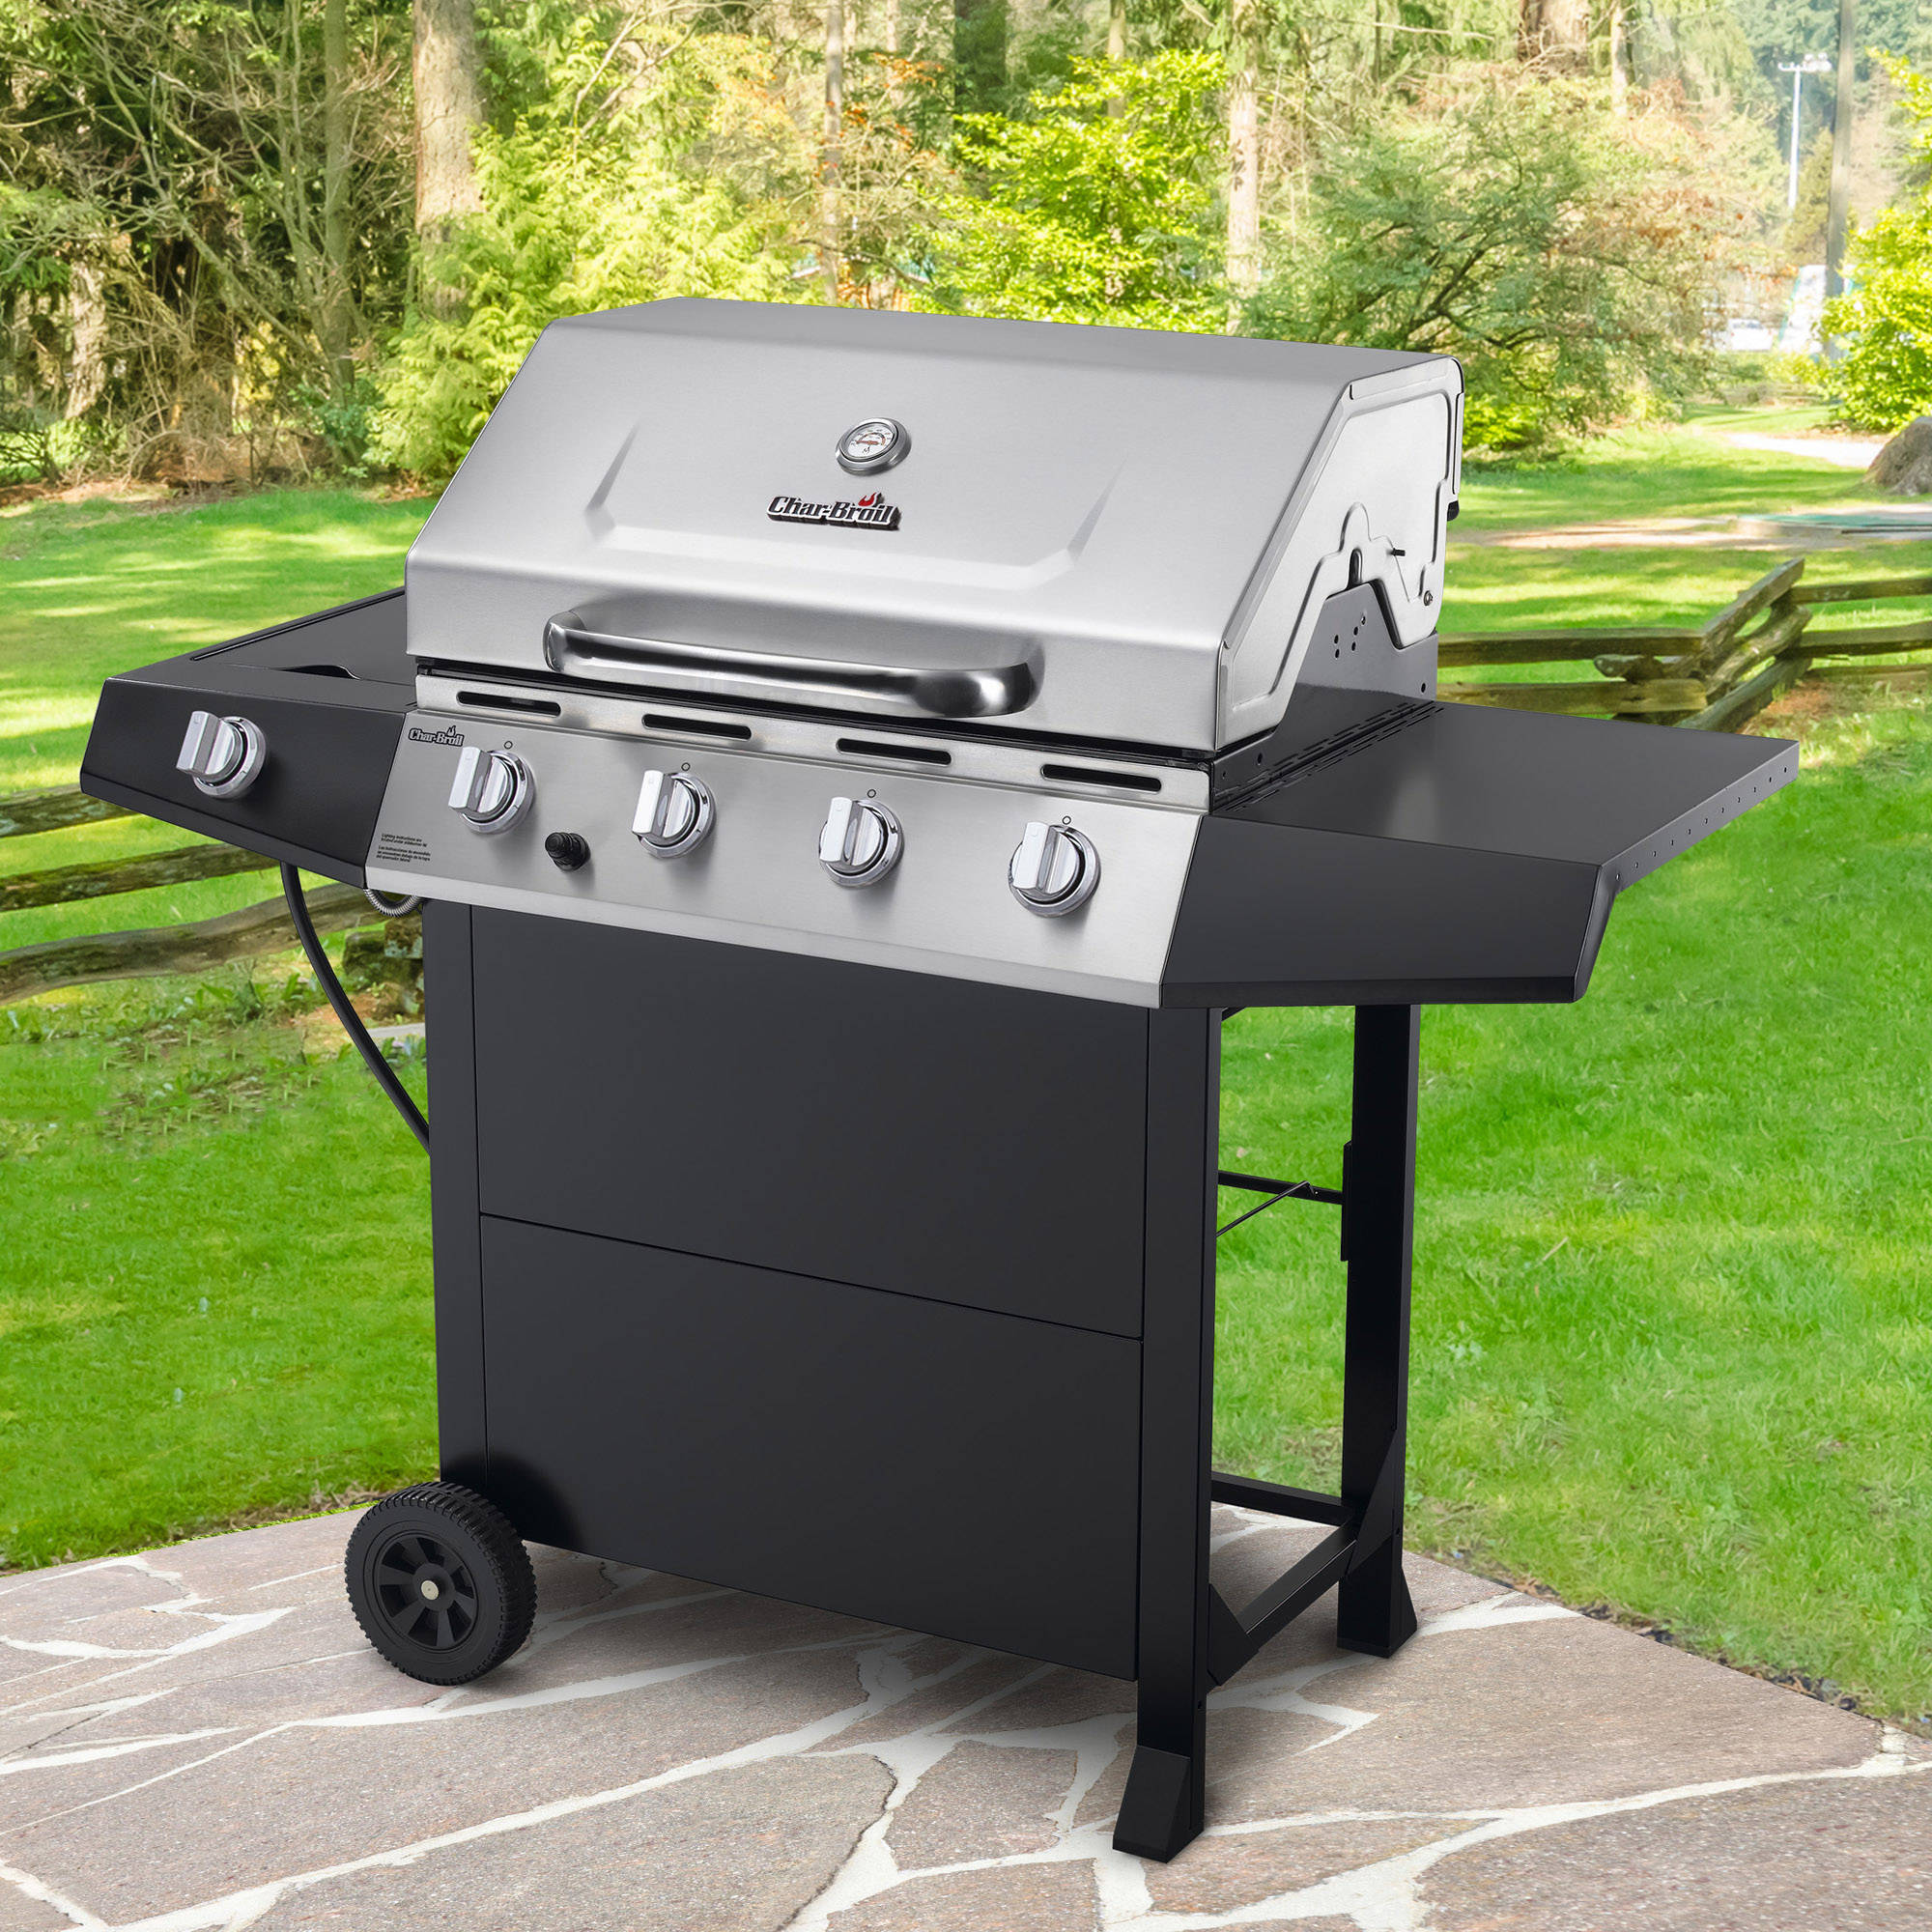 Char Broil 4 Burner Gas Grill Stainless Steel Black Walmart